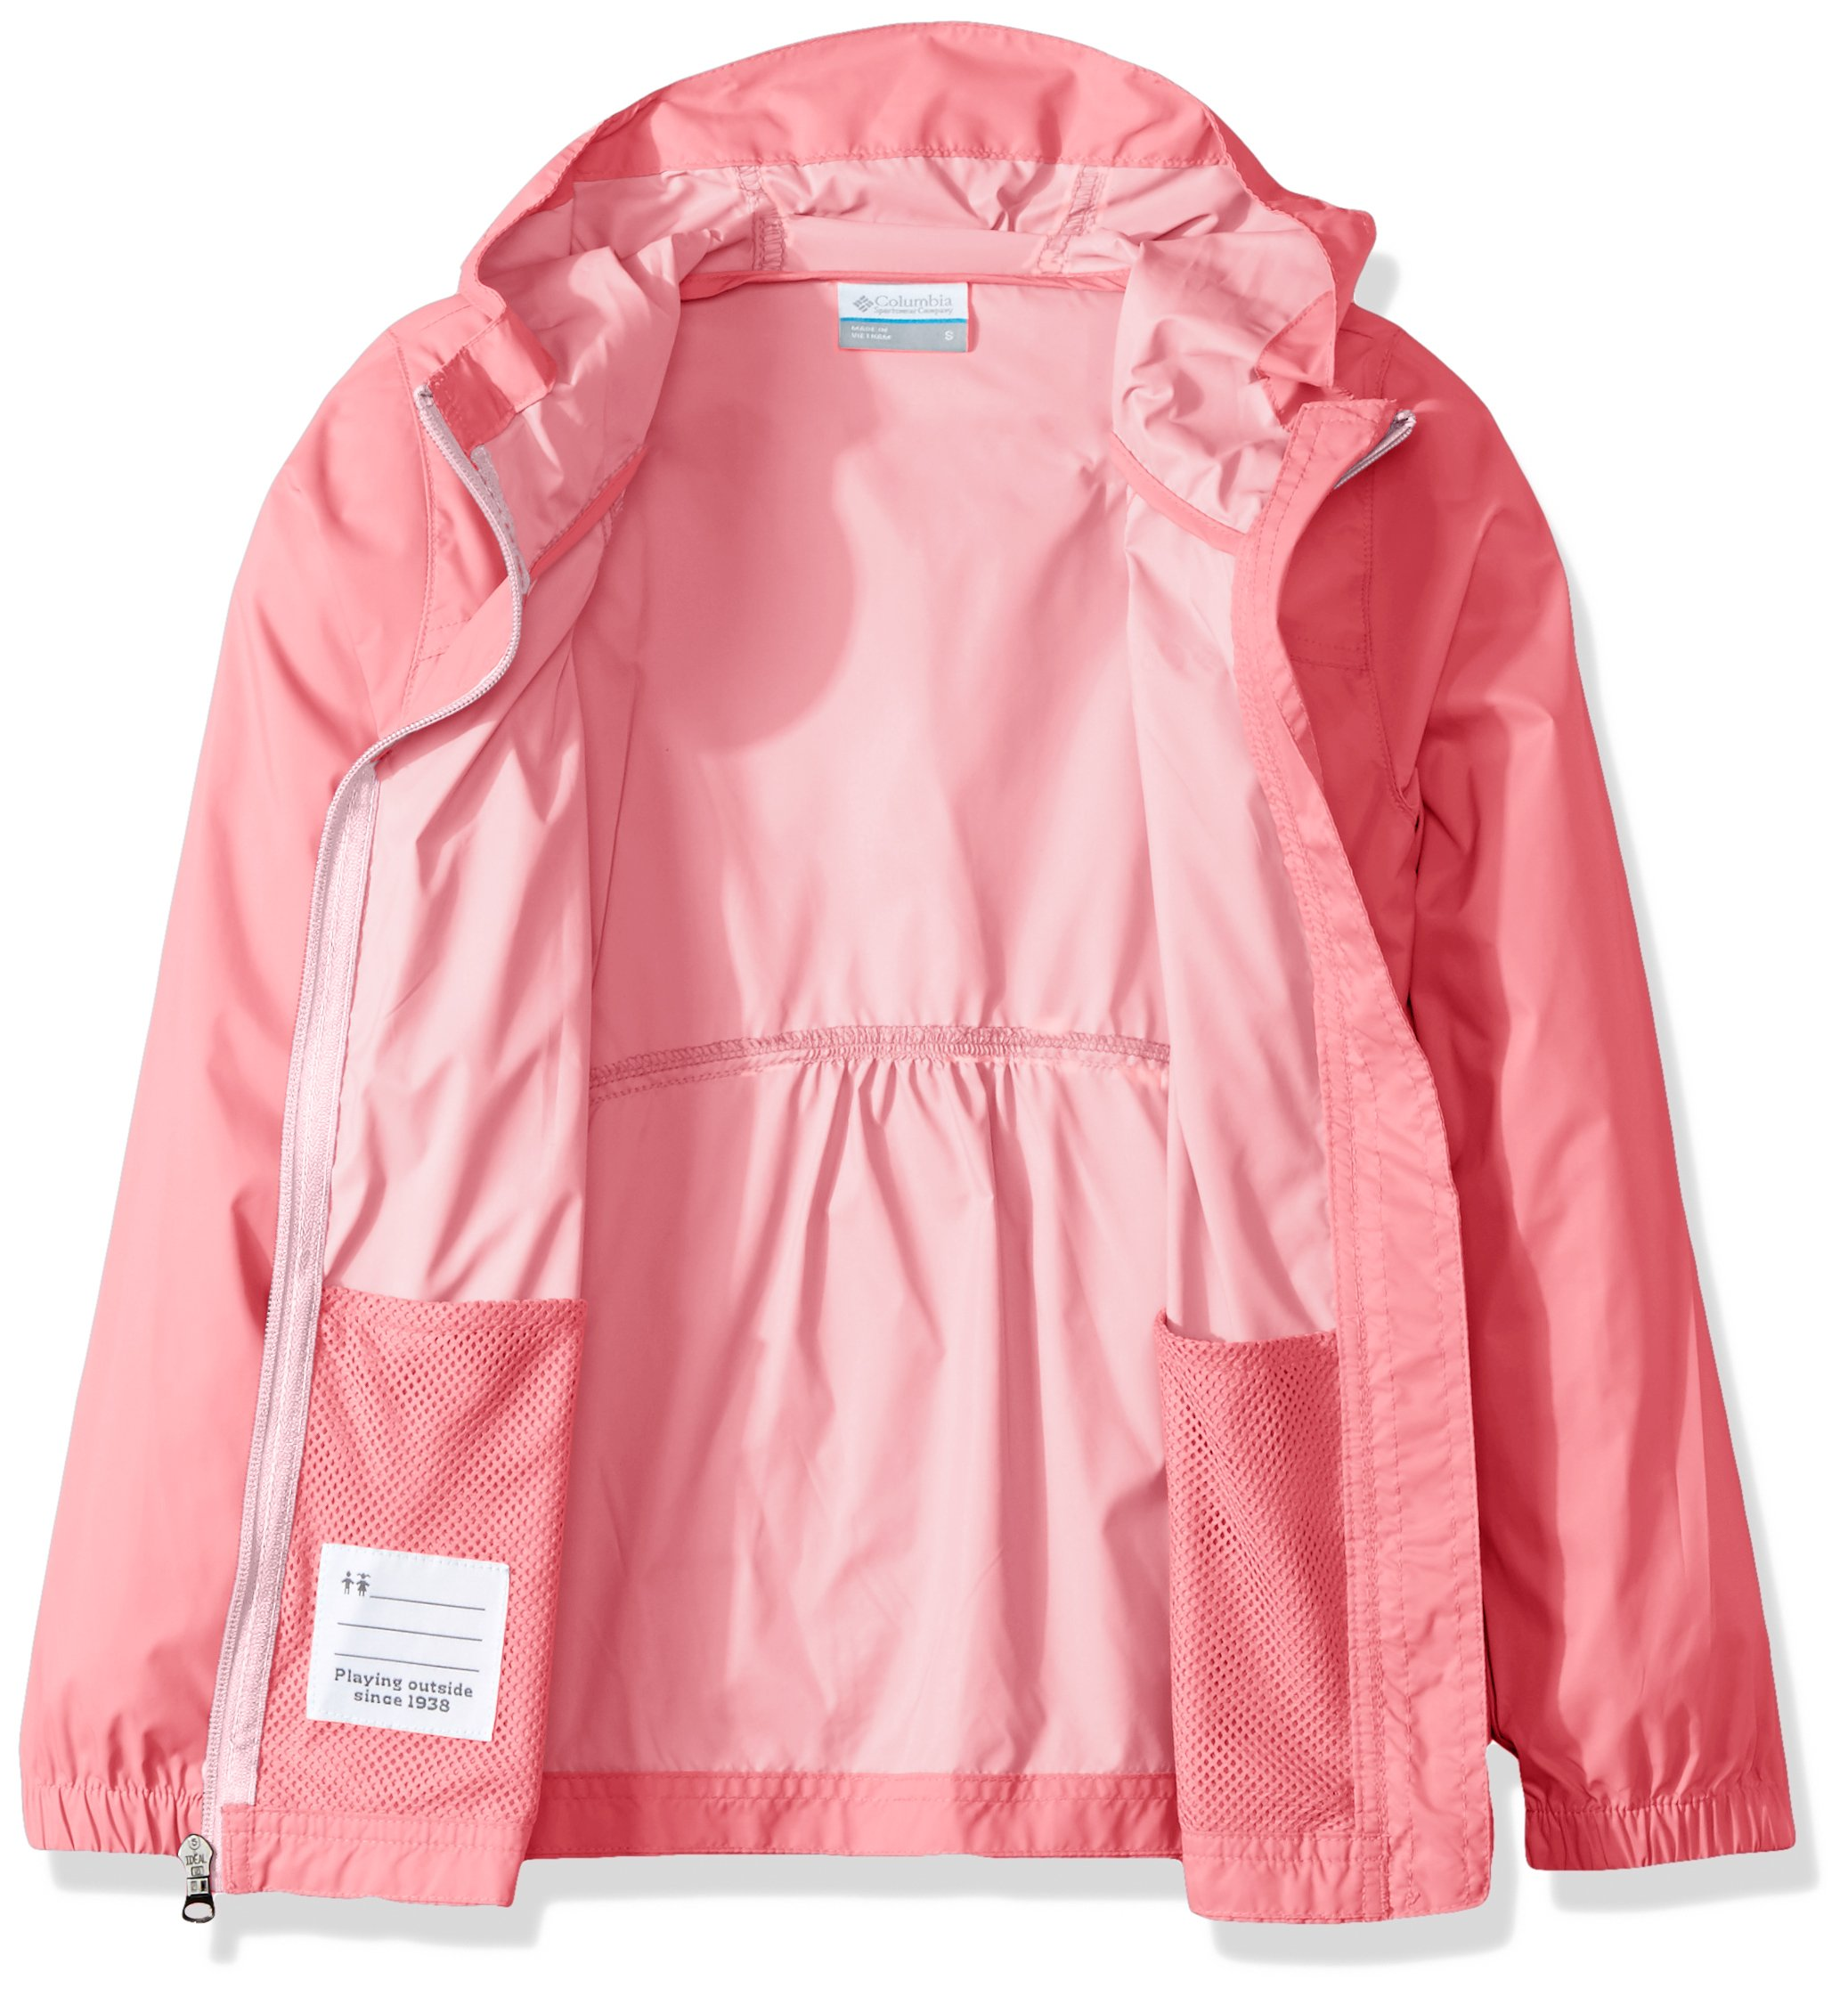 6c4cad256 Columbia Girls' Switchback Rain Jacket < Rain Wear < Clothing, Shoes &  Jewelry - tibs